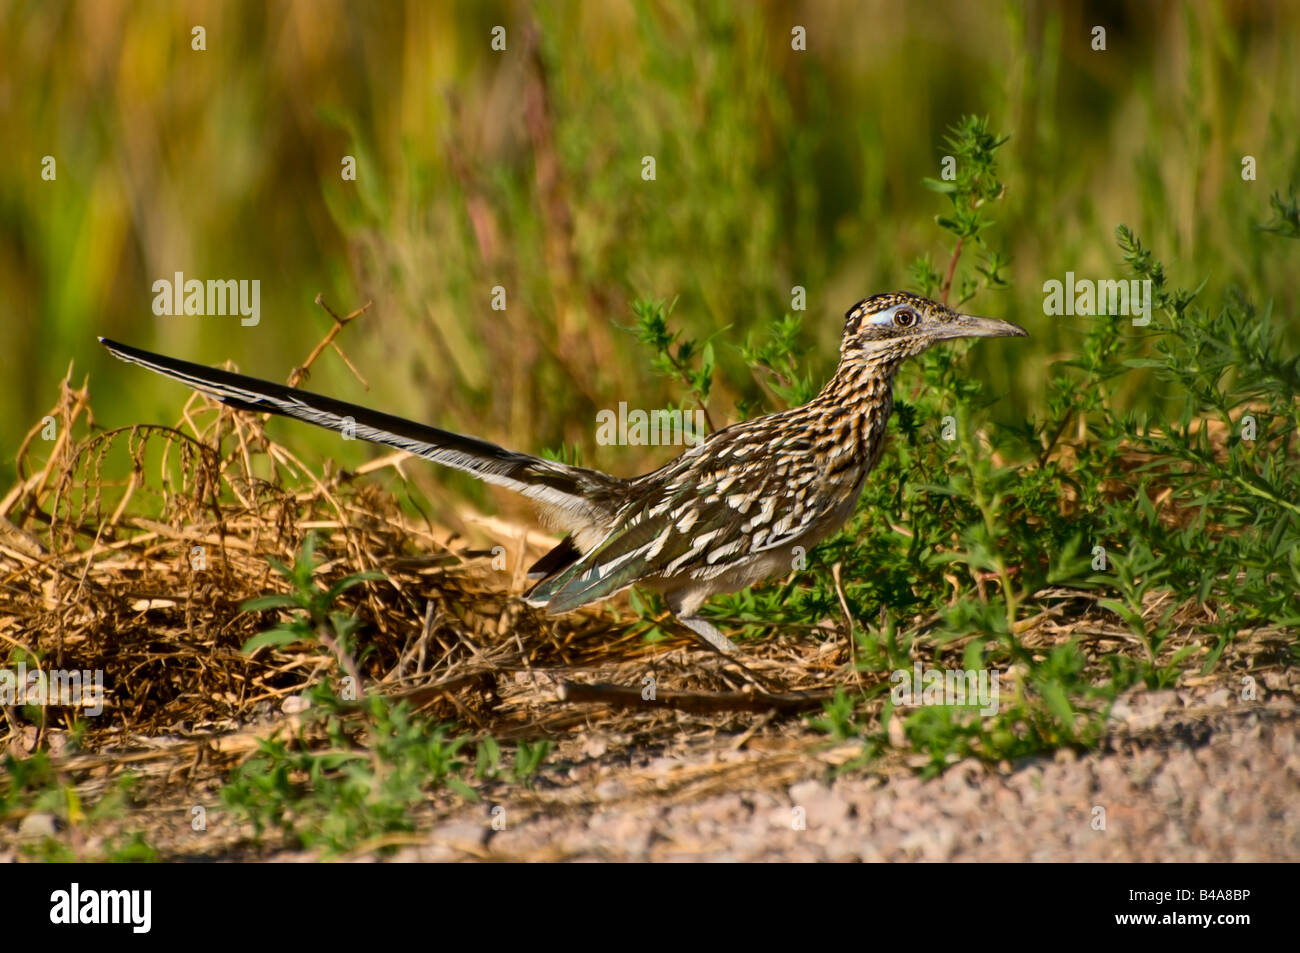 Photo of a Roadrunner Image taken in Bosque del Apache National Wildlife Reserve New Mexico - Stock Image